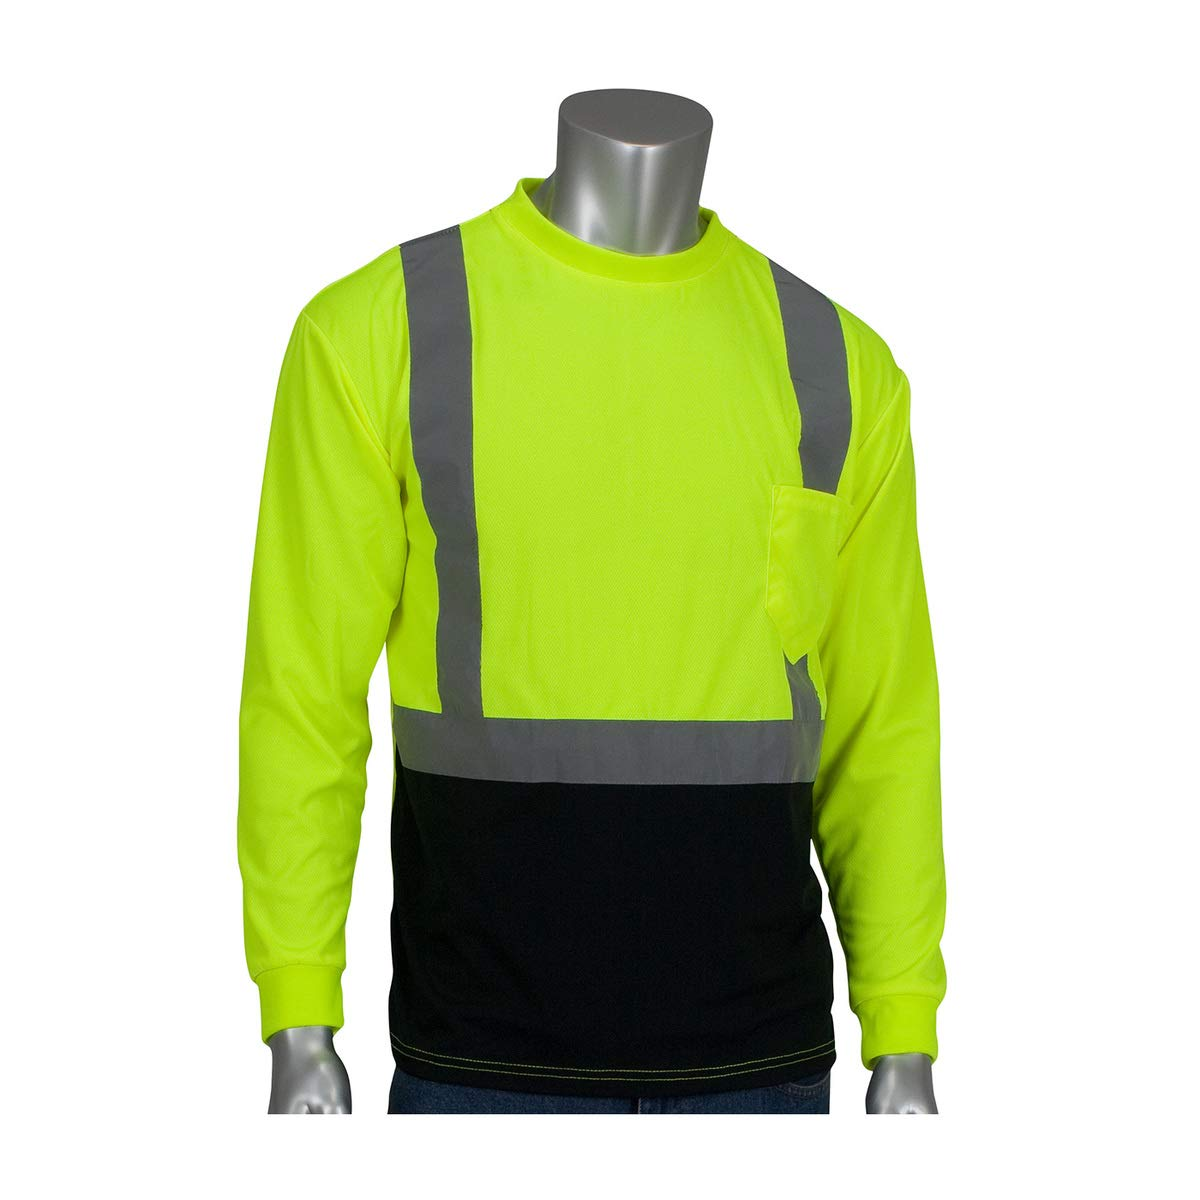 Protective Industrial Products 3X Hi-Viz Yellow/Hi-Viz Orange 1 Polyester/Birdseye Mesh Two-Tone Long Sleeve Shirt